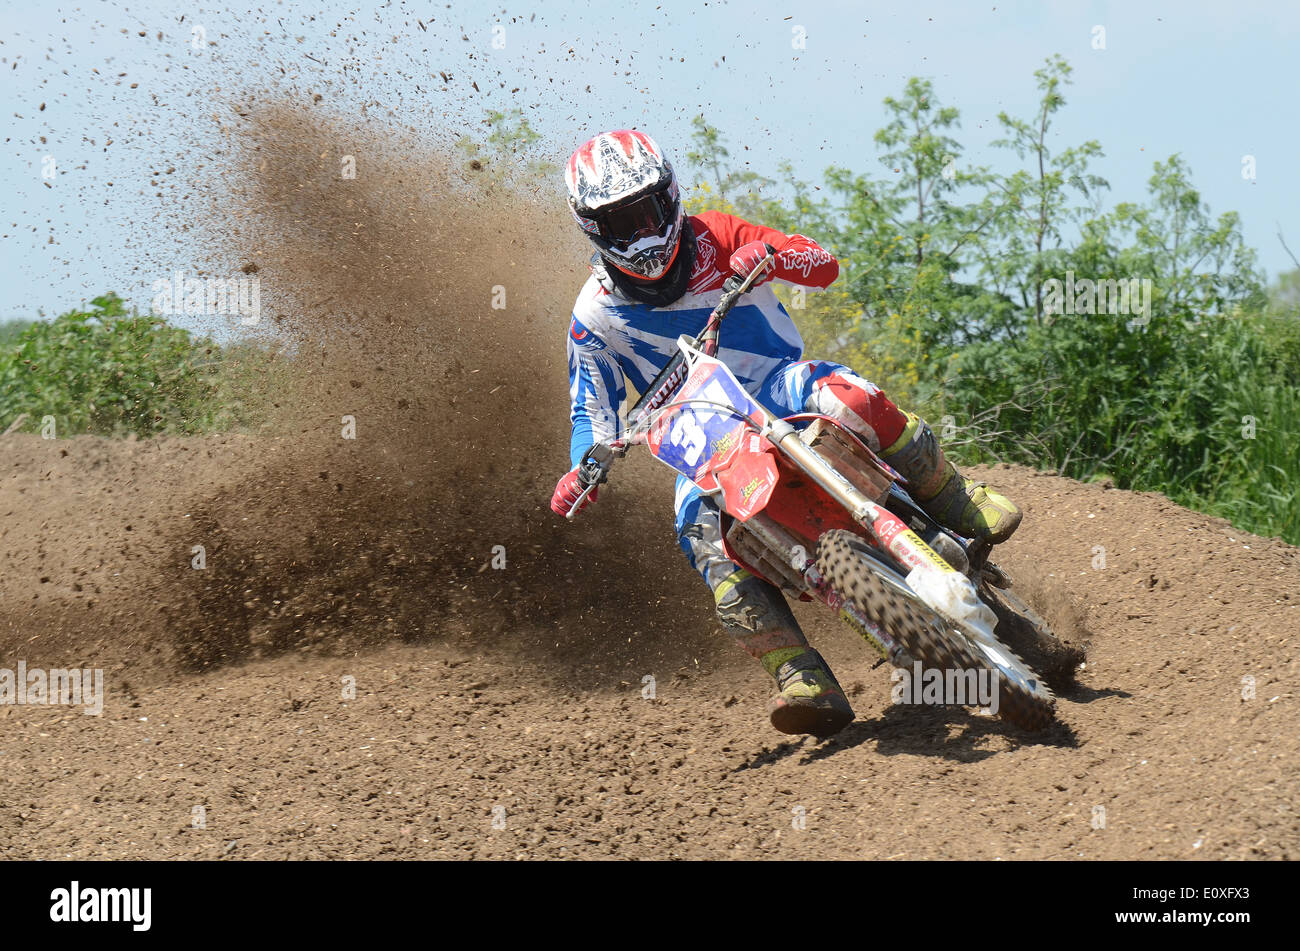 motocross-is-a-form-of-motorcycle-racing-held-on-enclosed-off-road-E0XFX3.jpg